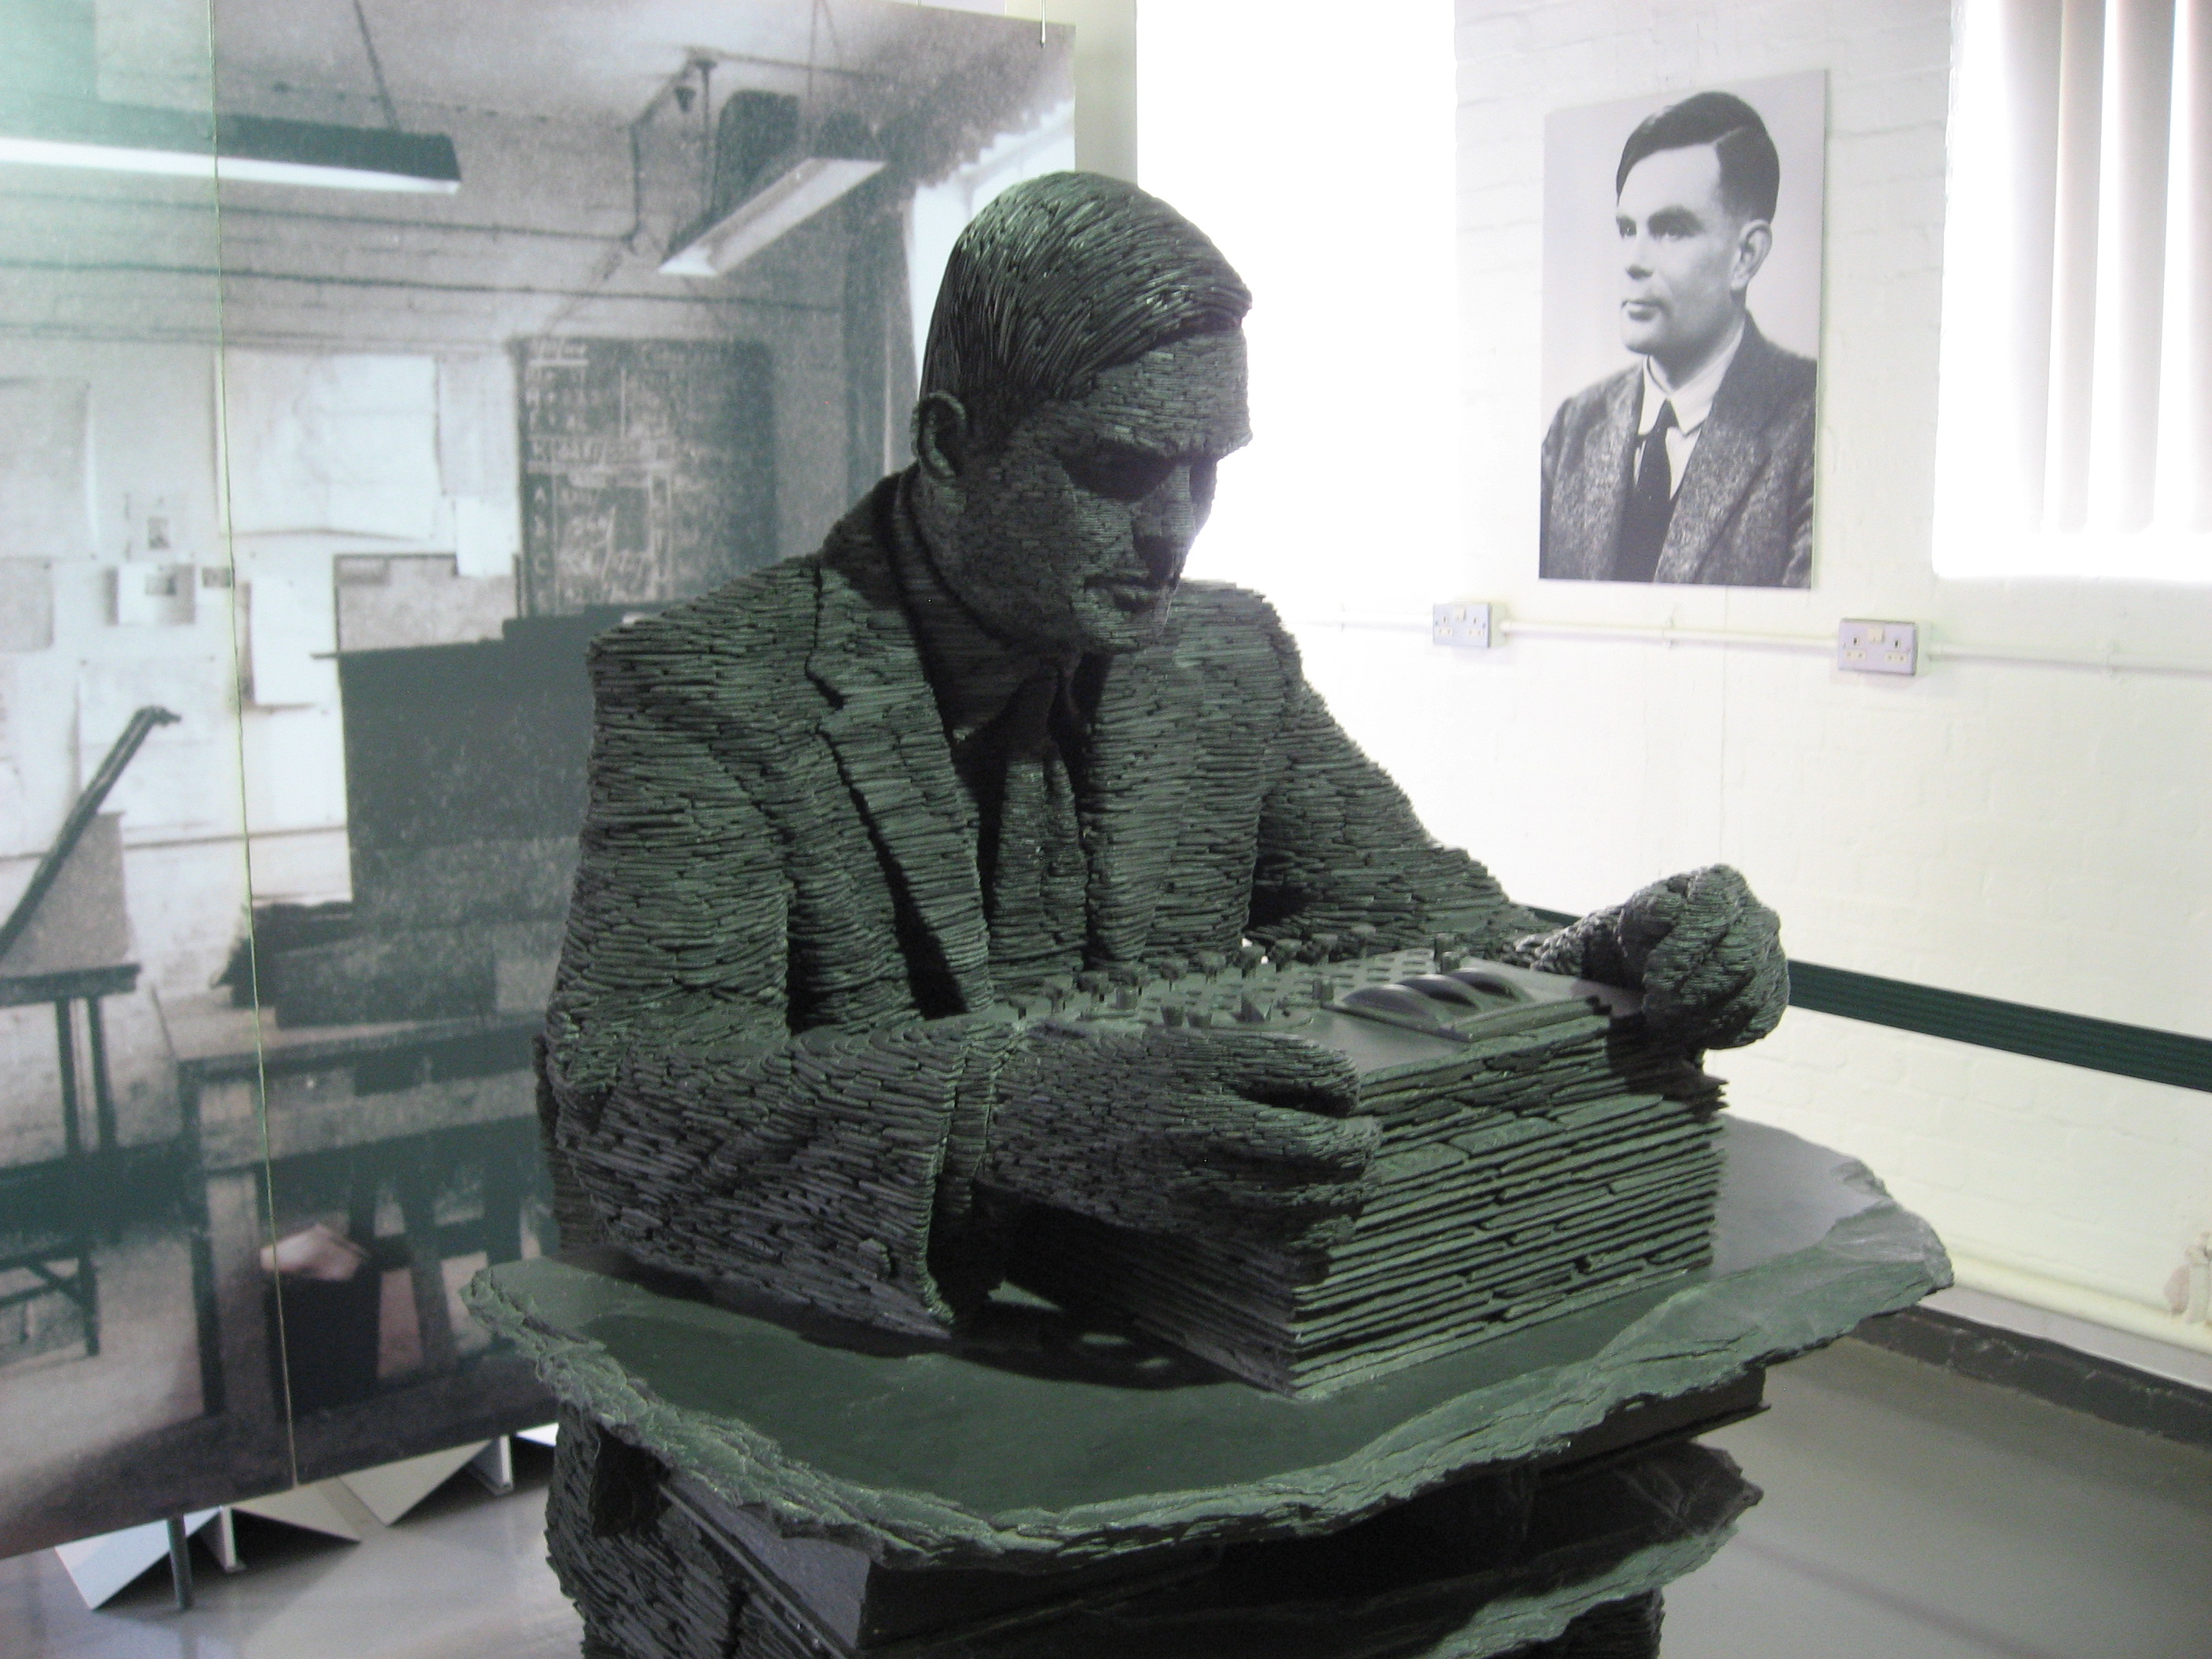 Alan Turing in slate at Bletchley Park